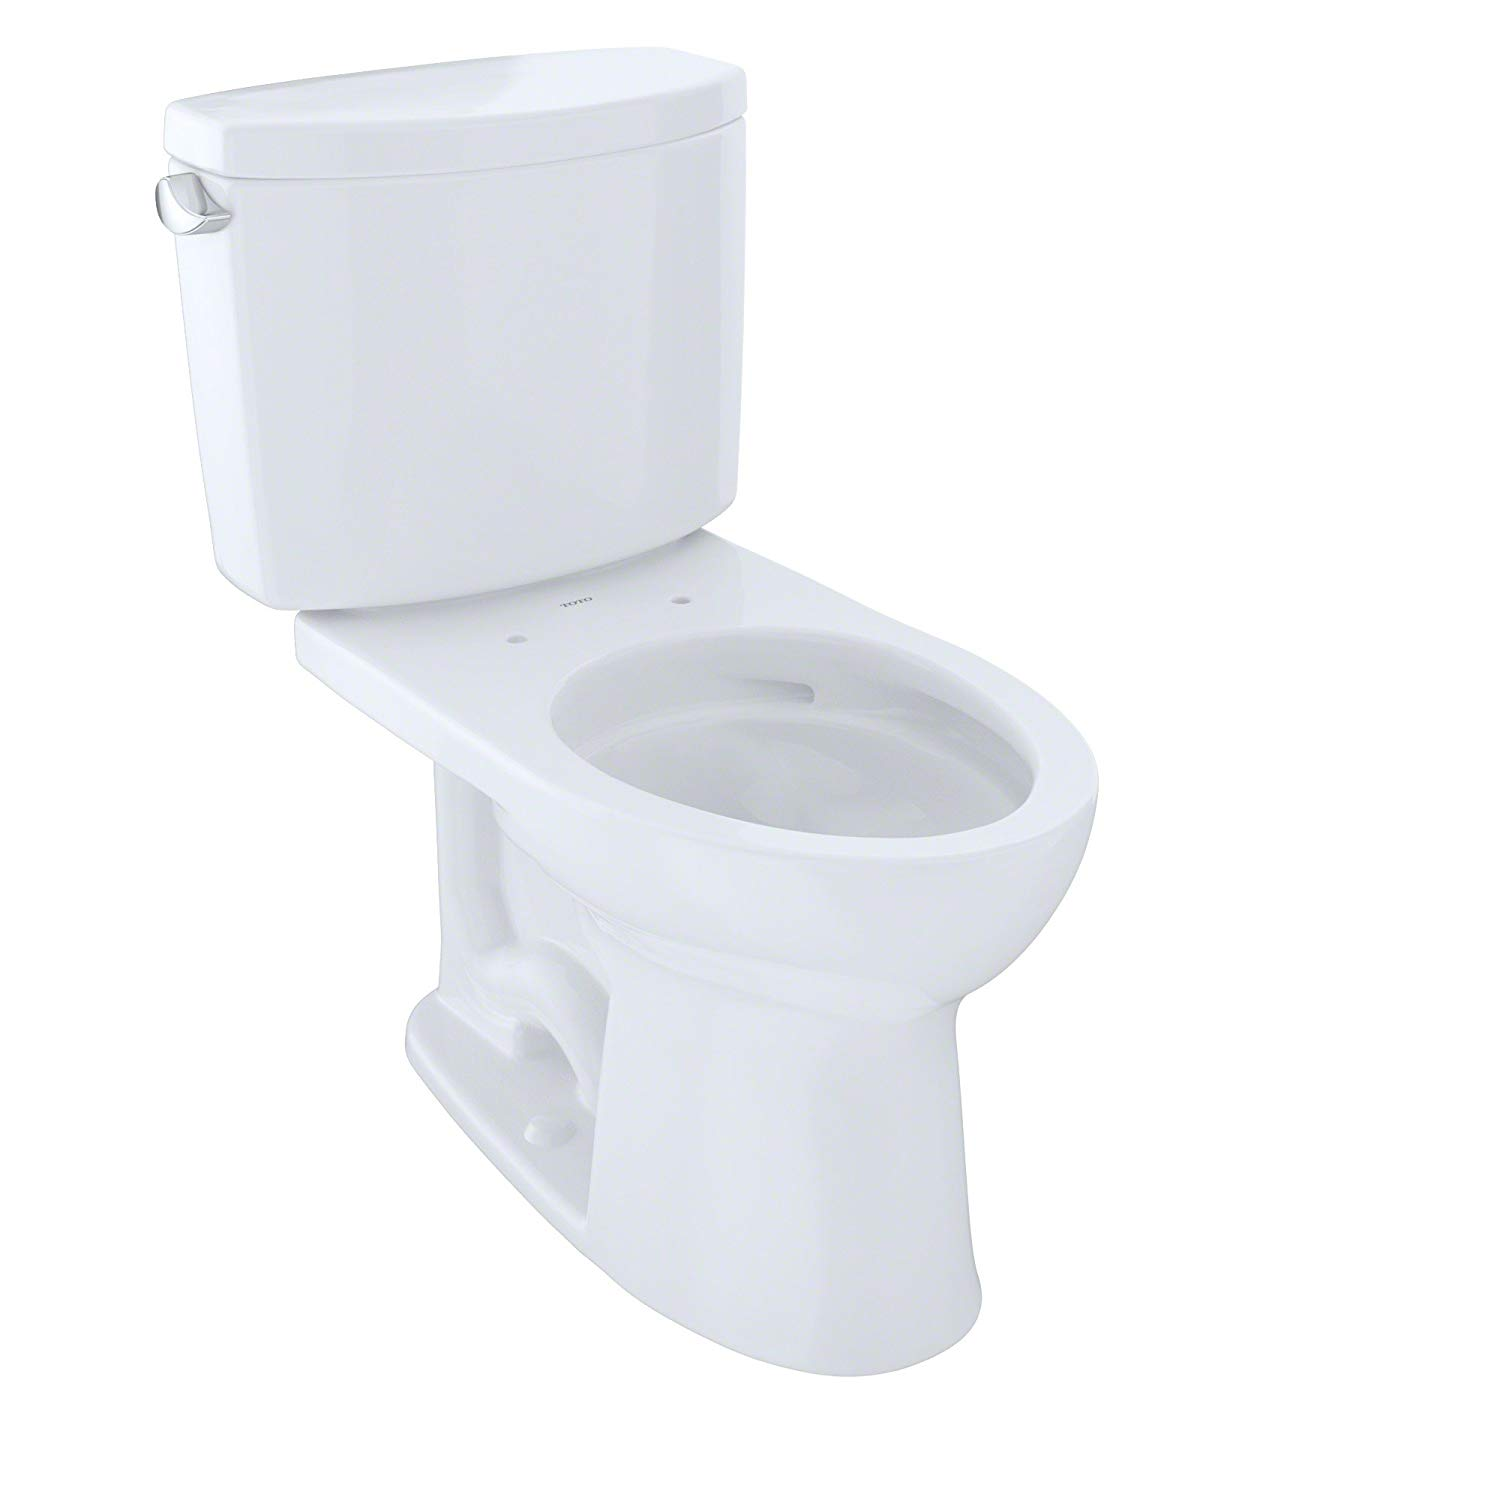 Fine Best Toto Toilets November 2019 Reviews Buying Guide Alphanode Cool Chair Designs And Ideas Alphanodeonline